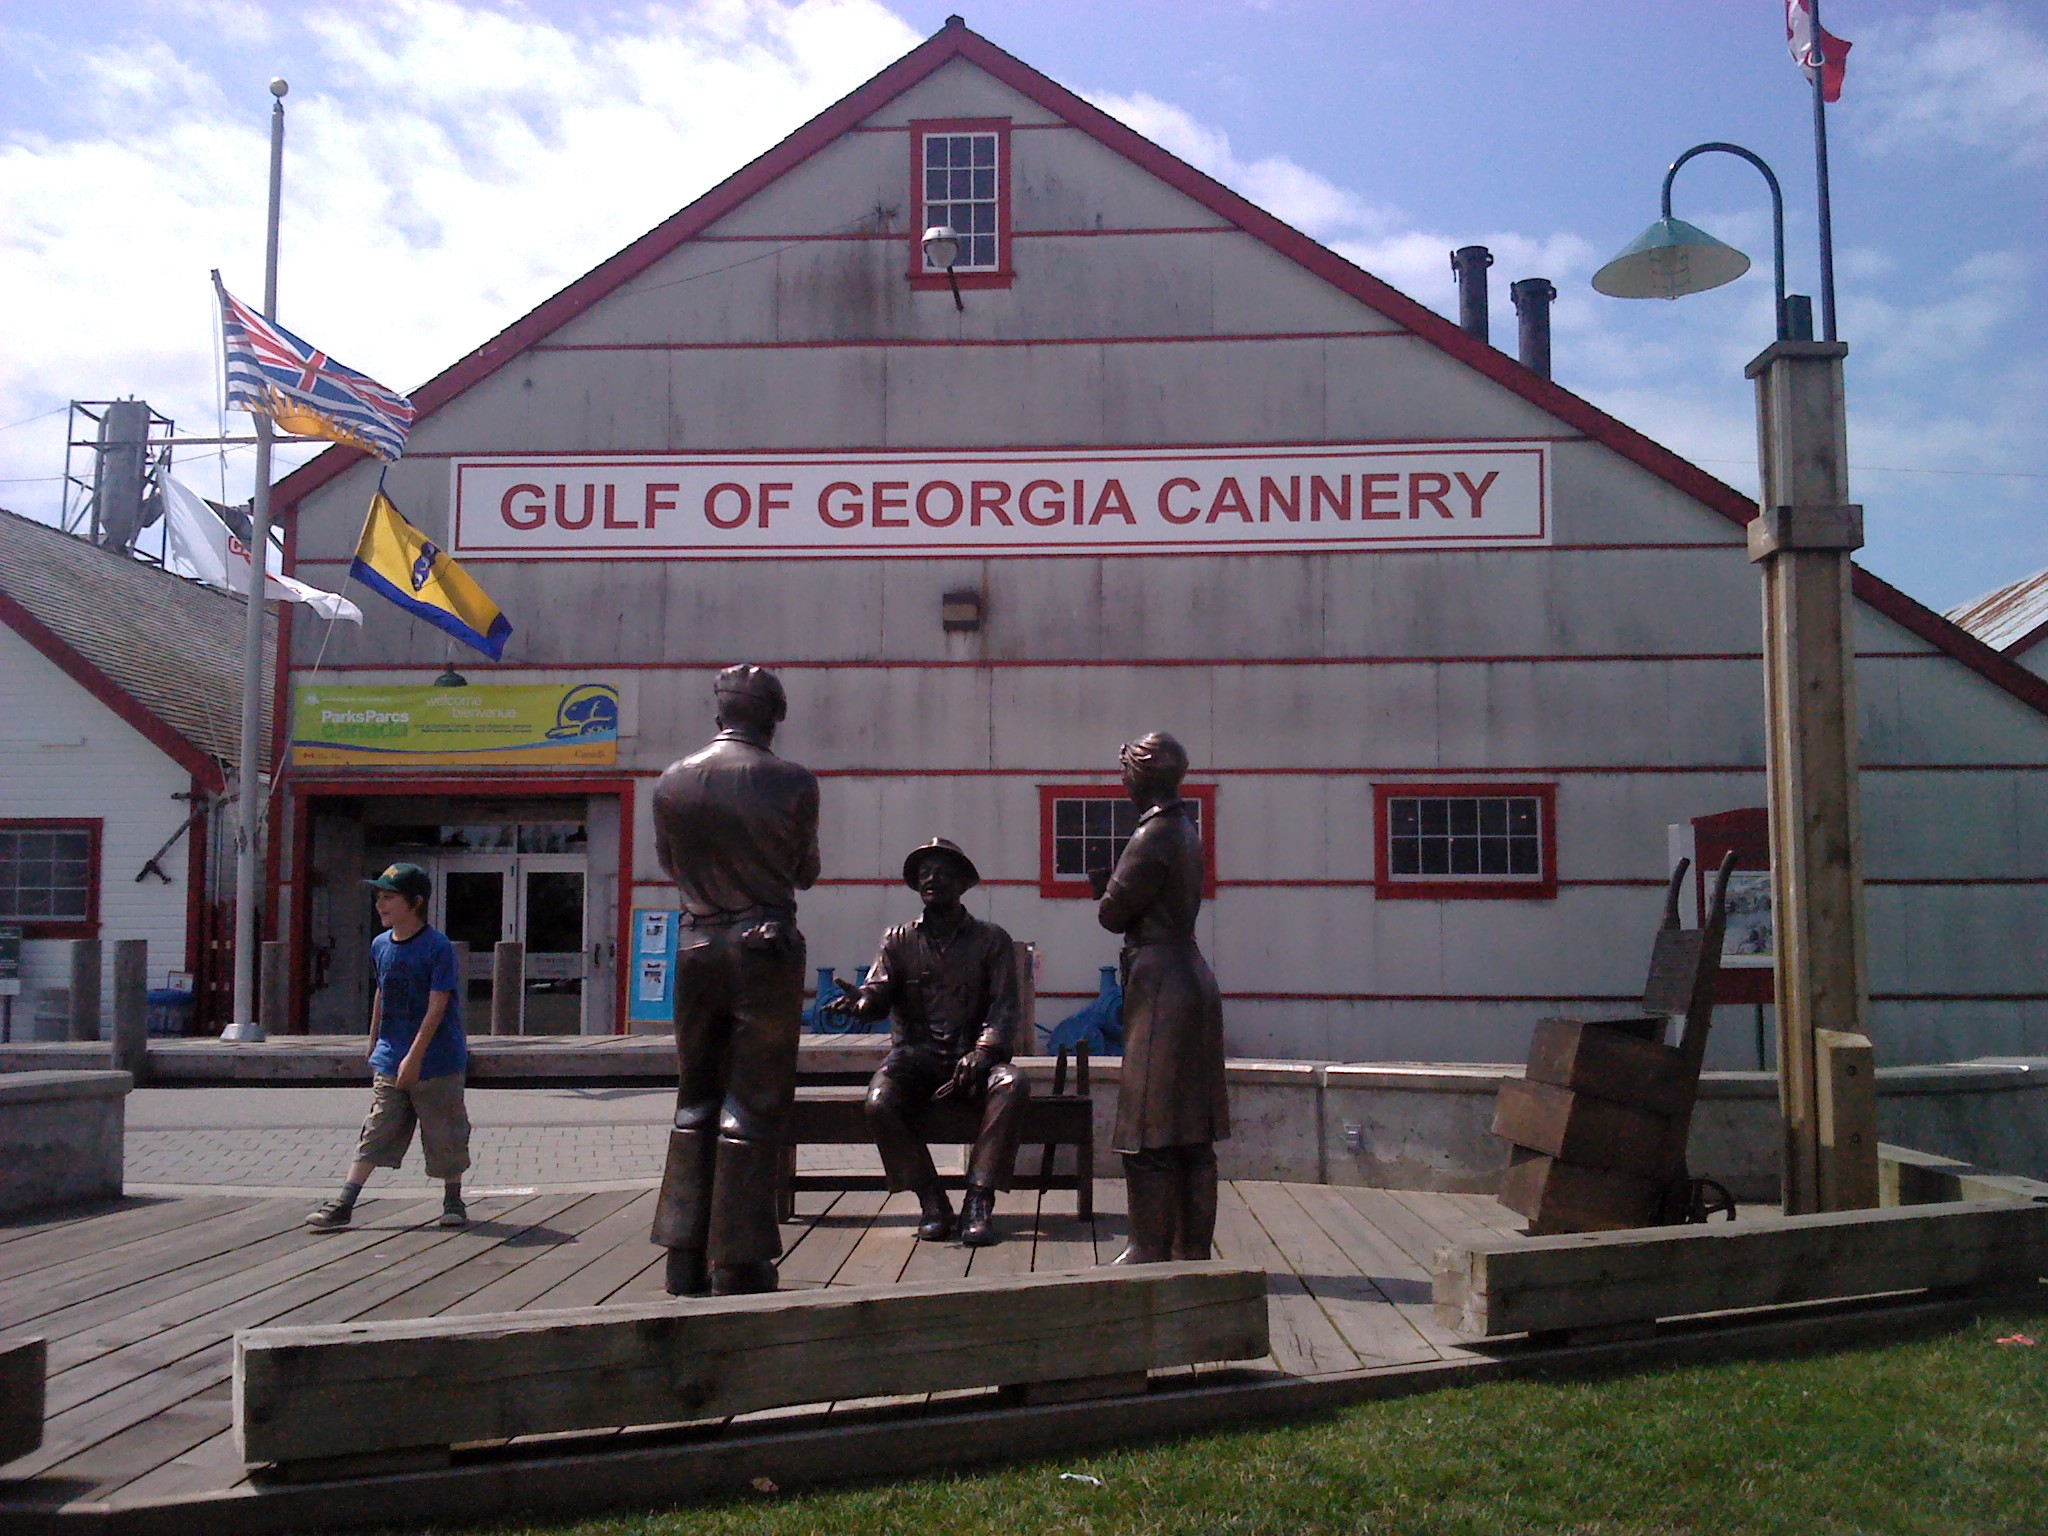 Gulf of Georgia Cannery